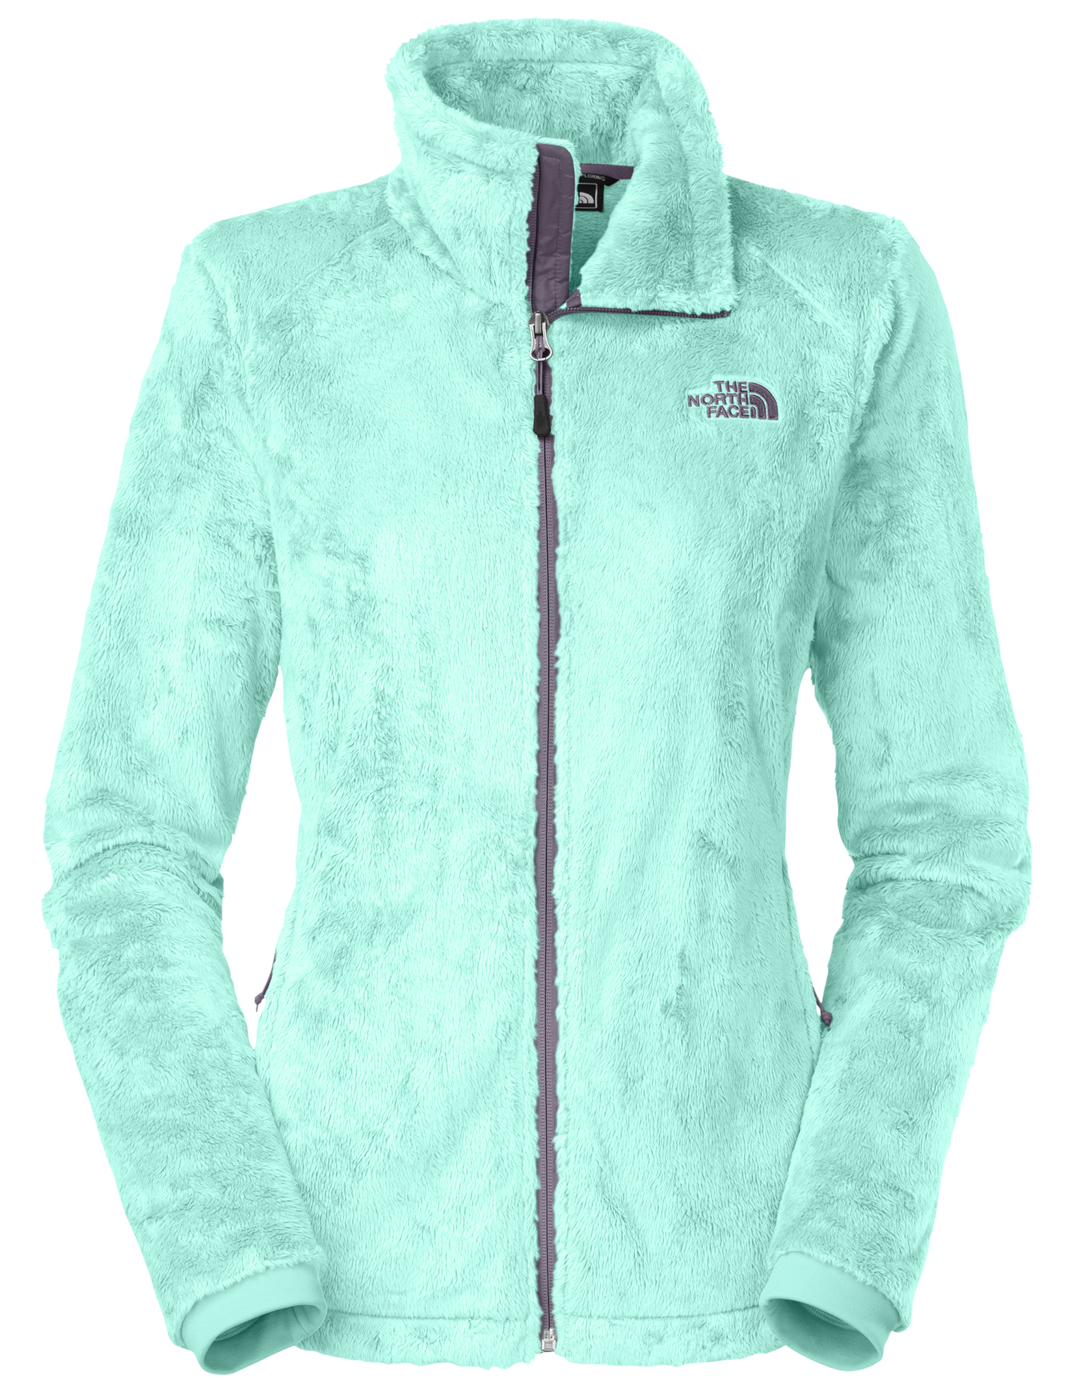 The northface womens jackets